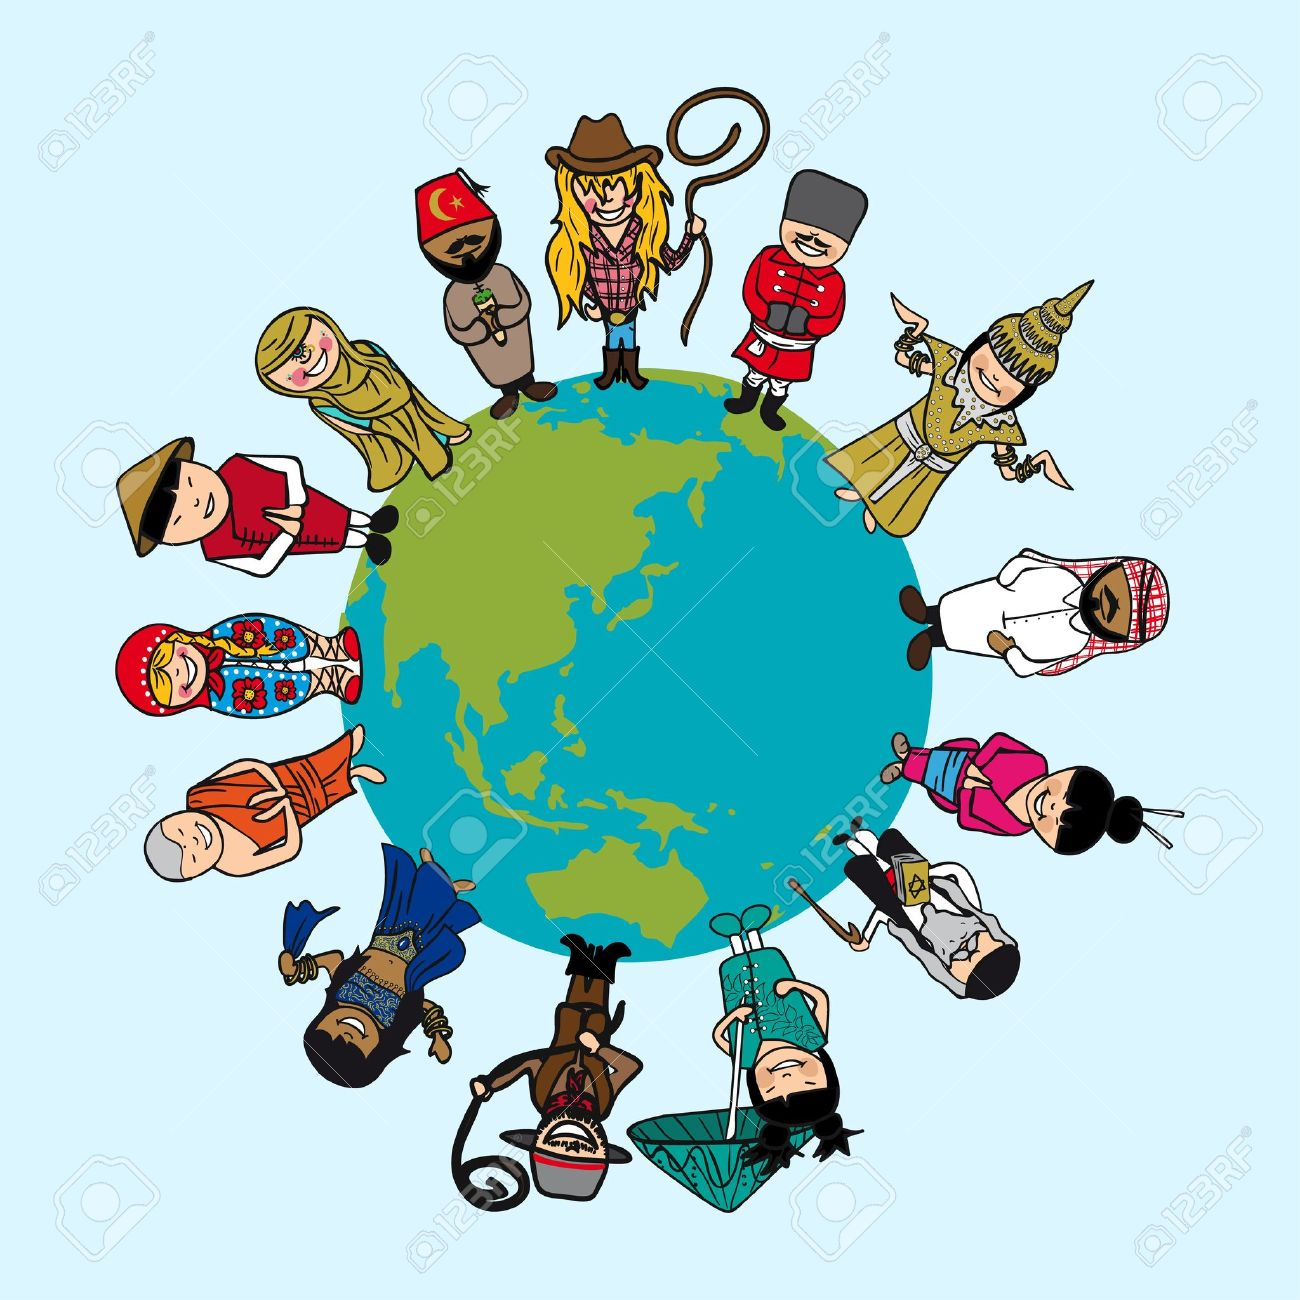 World map, diversity people cartoons with distinctive outfit. - 21280251